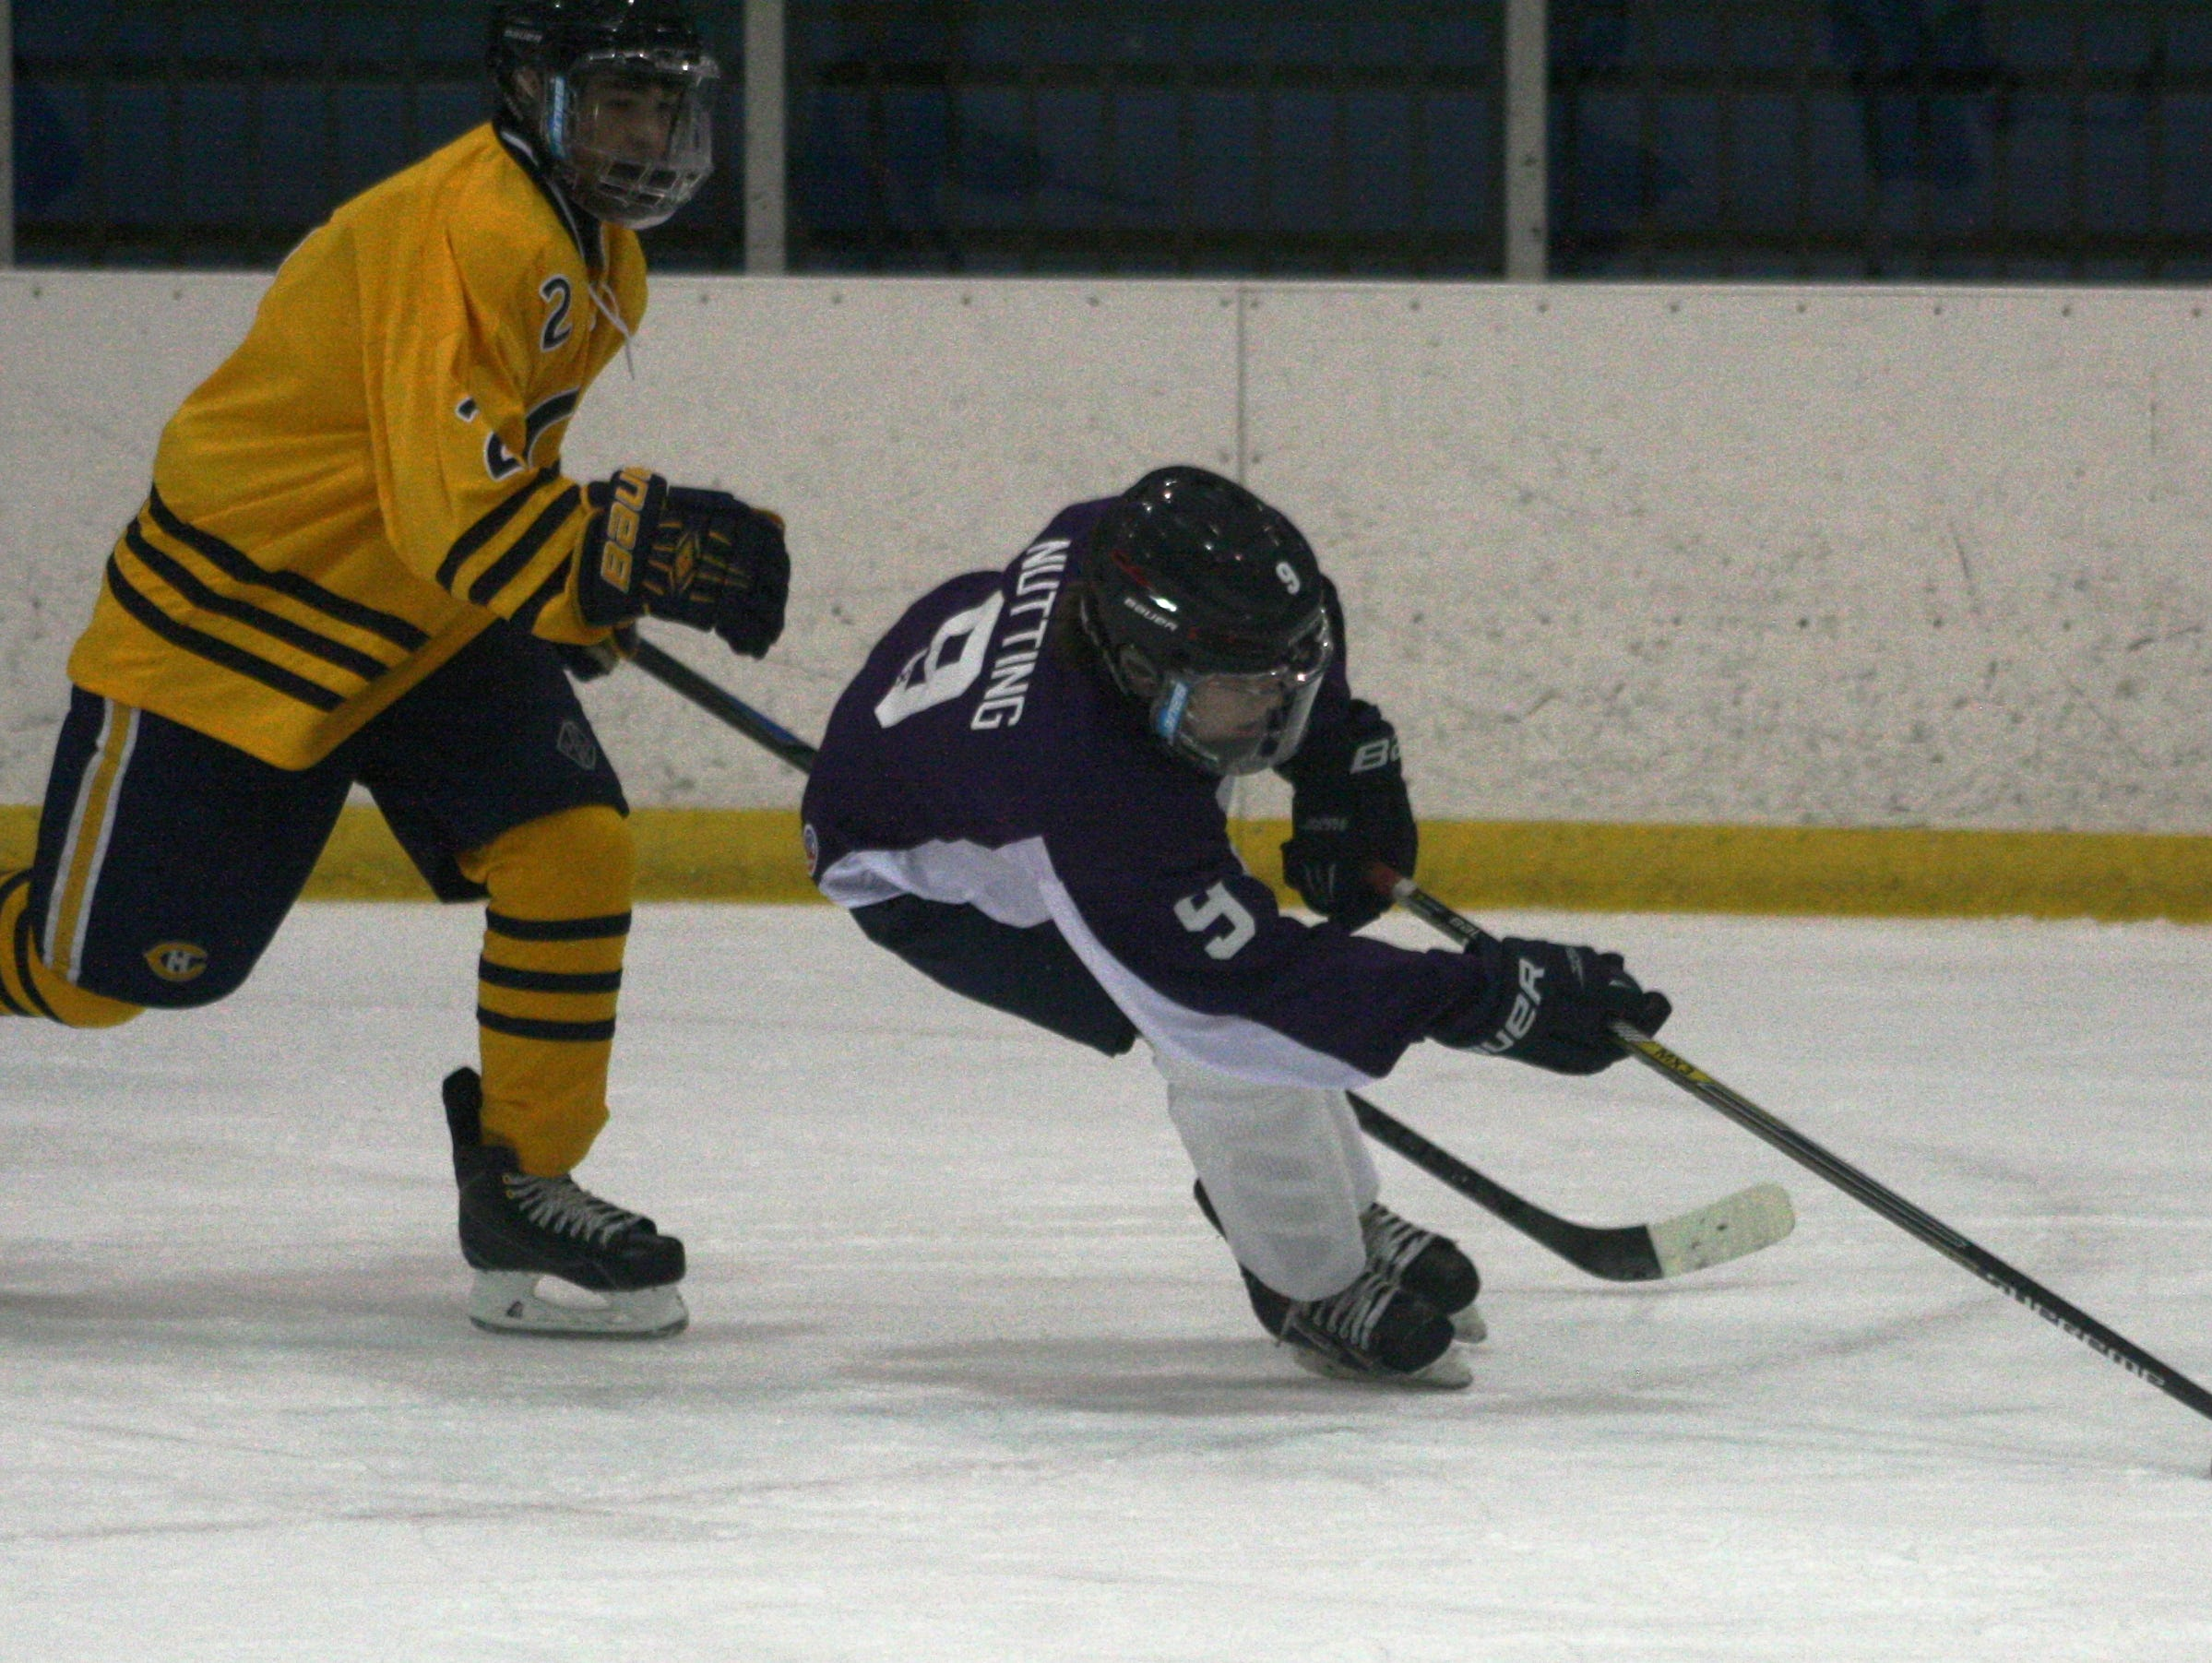 Franklin's Brendan Nutting made this strong first-period rush at the net.